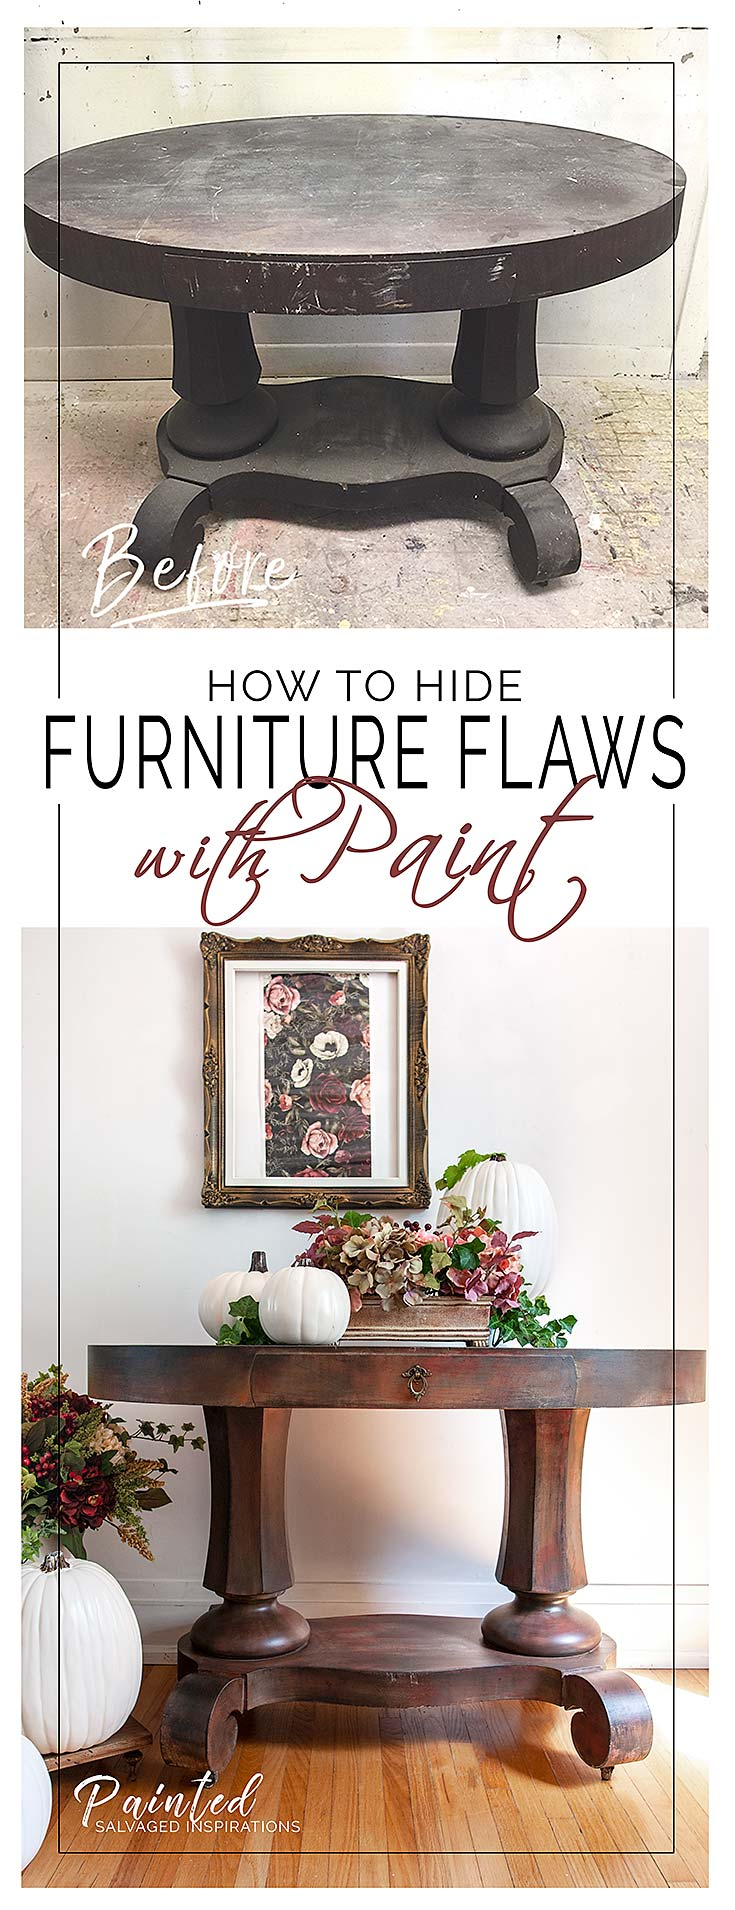 How To Hide Furniture Flaws w Paint